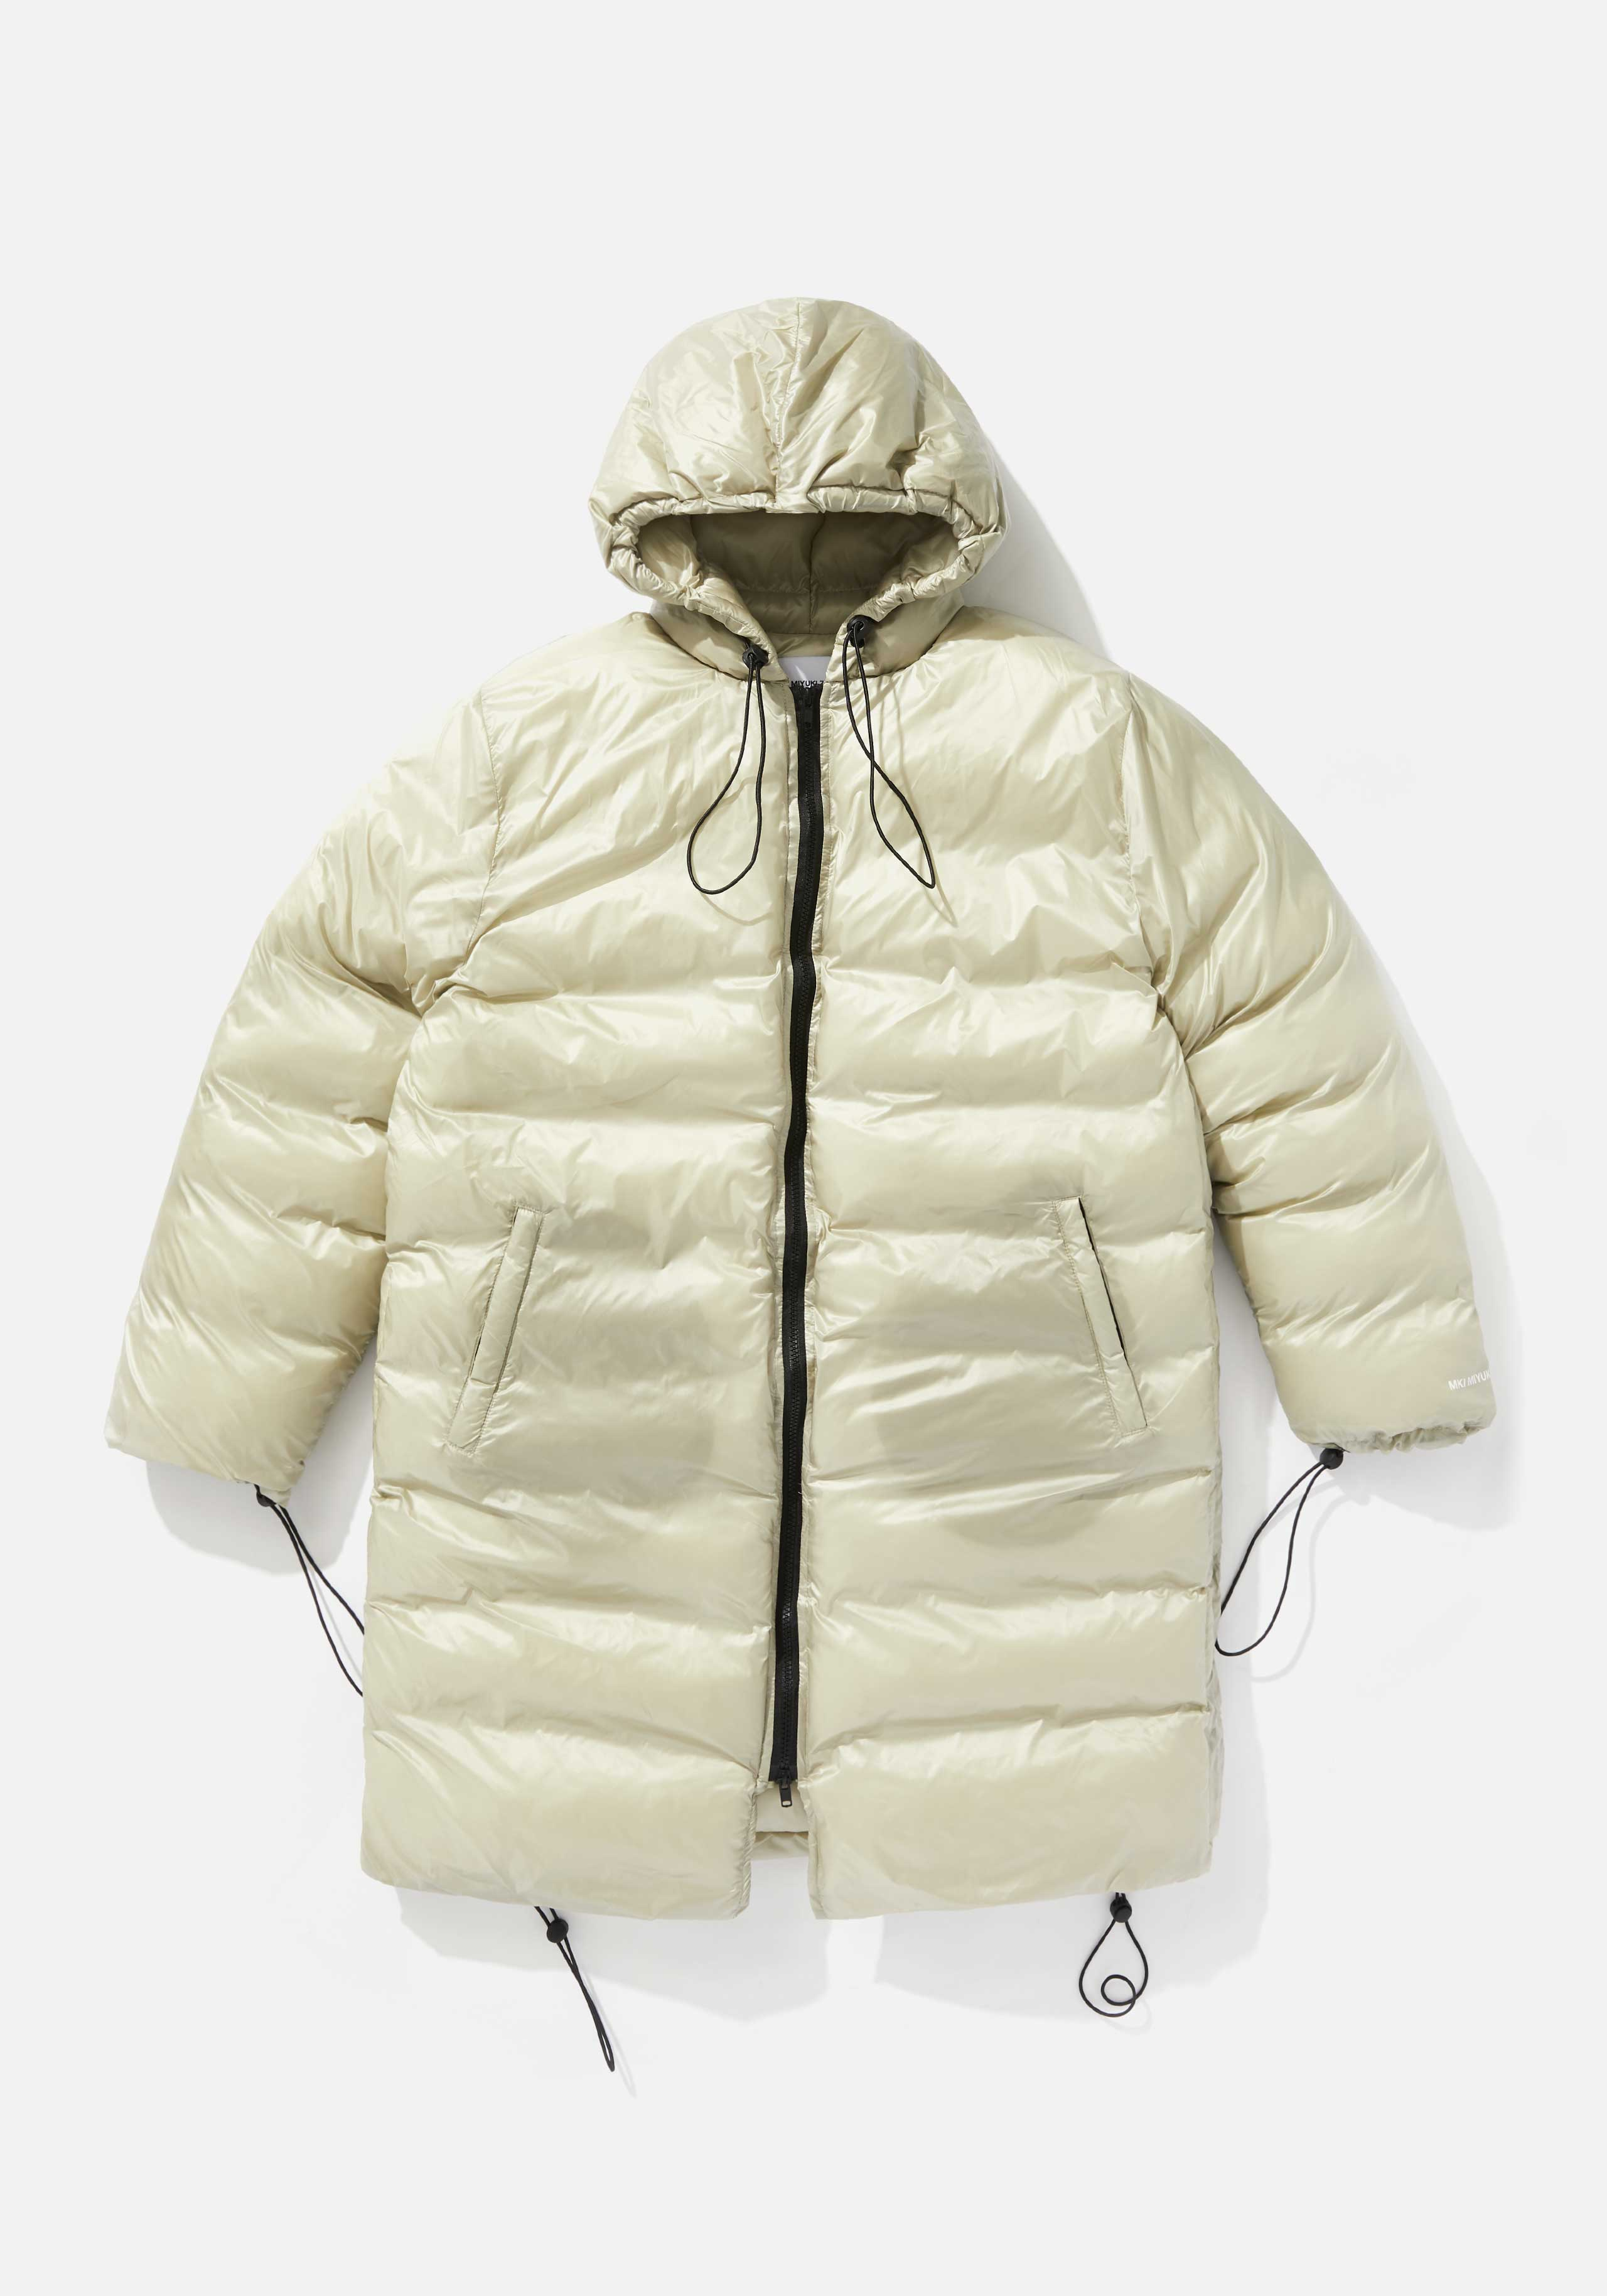 mki long hooded bubble jacket 1